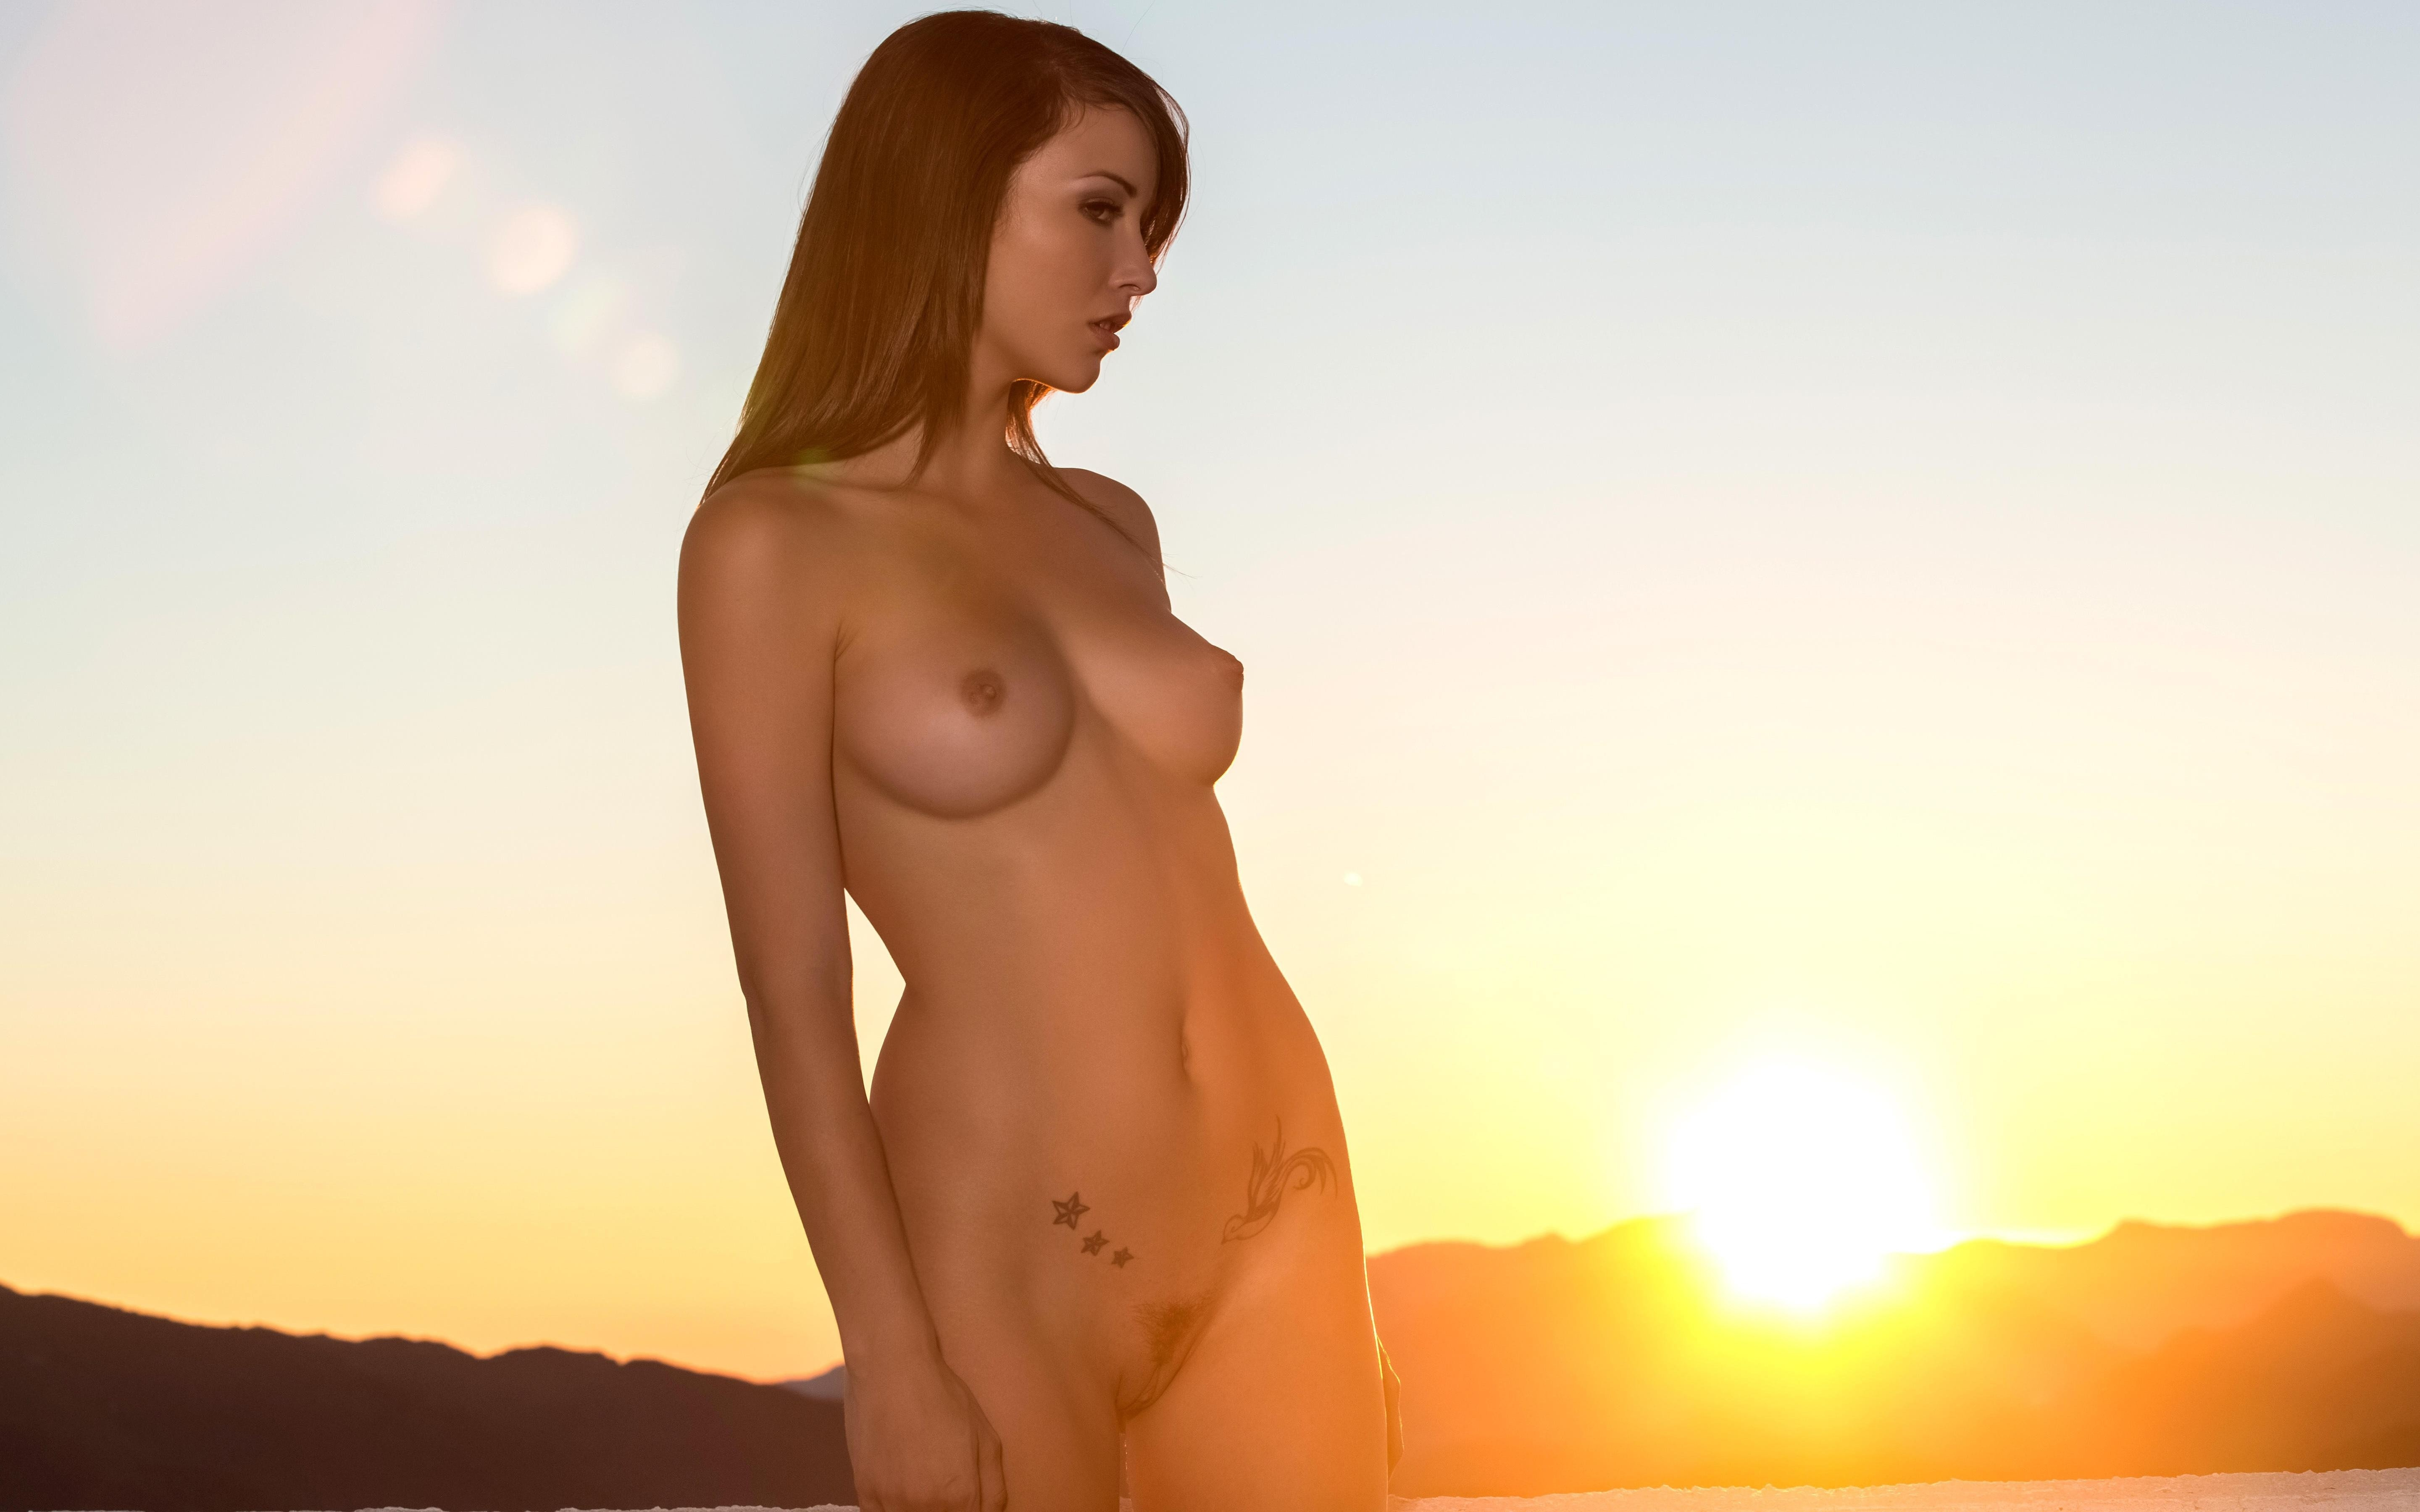 hot nude naked sexy cute model erotic outdoor sunset wallpaper